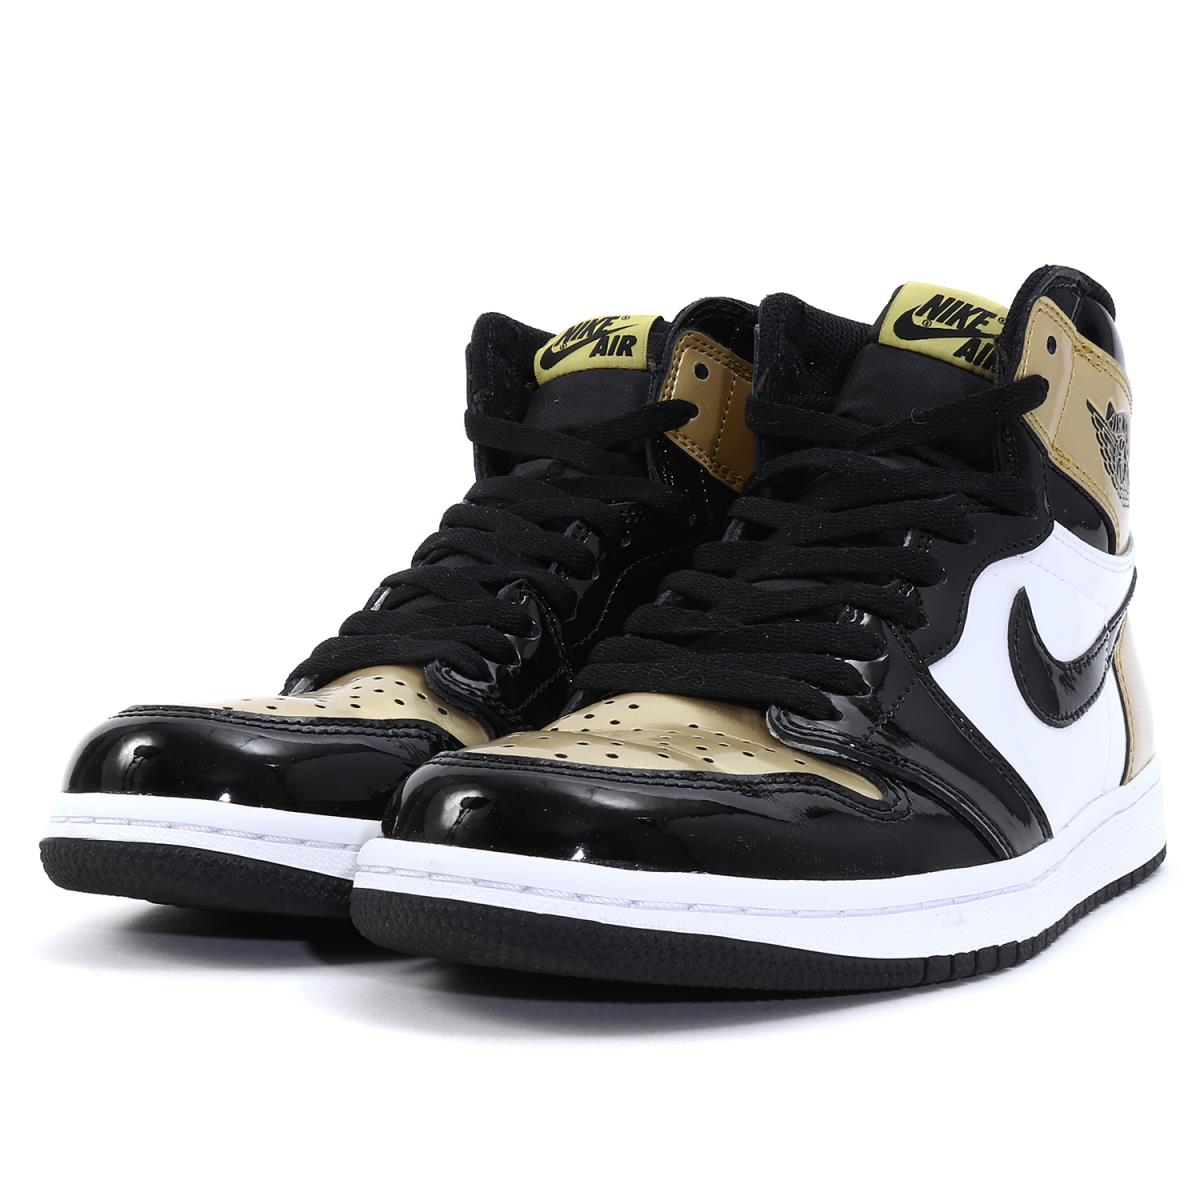 05e6fe27699c68 BEEGLE by Boo-Bee  NIKE (Nike) AIR JORDAN 1 RETRO HIGH OG NRG GOLD ...